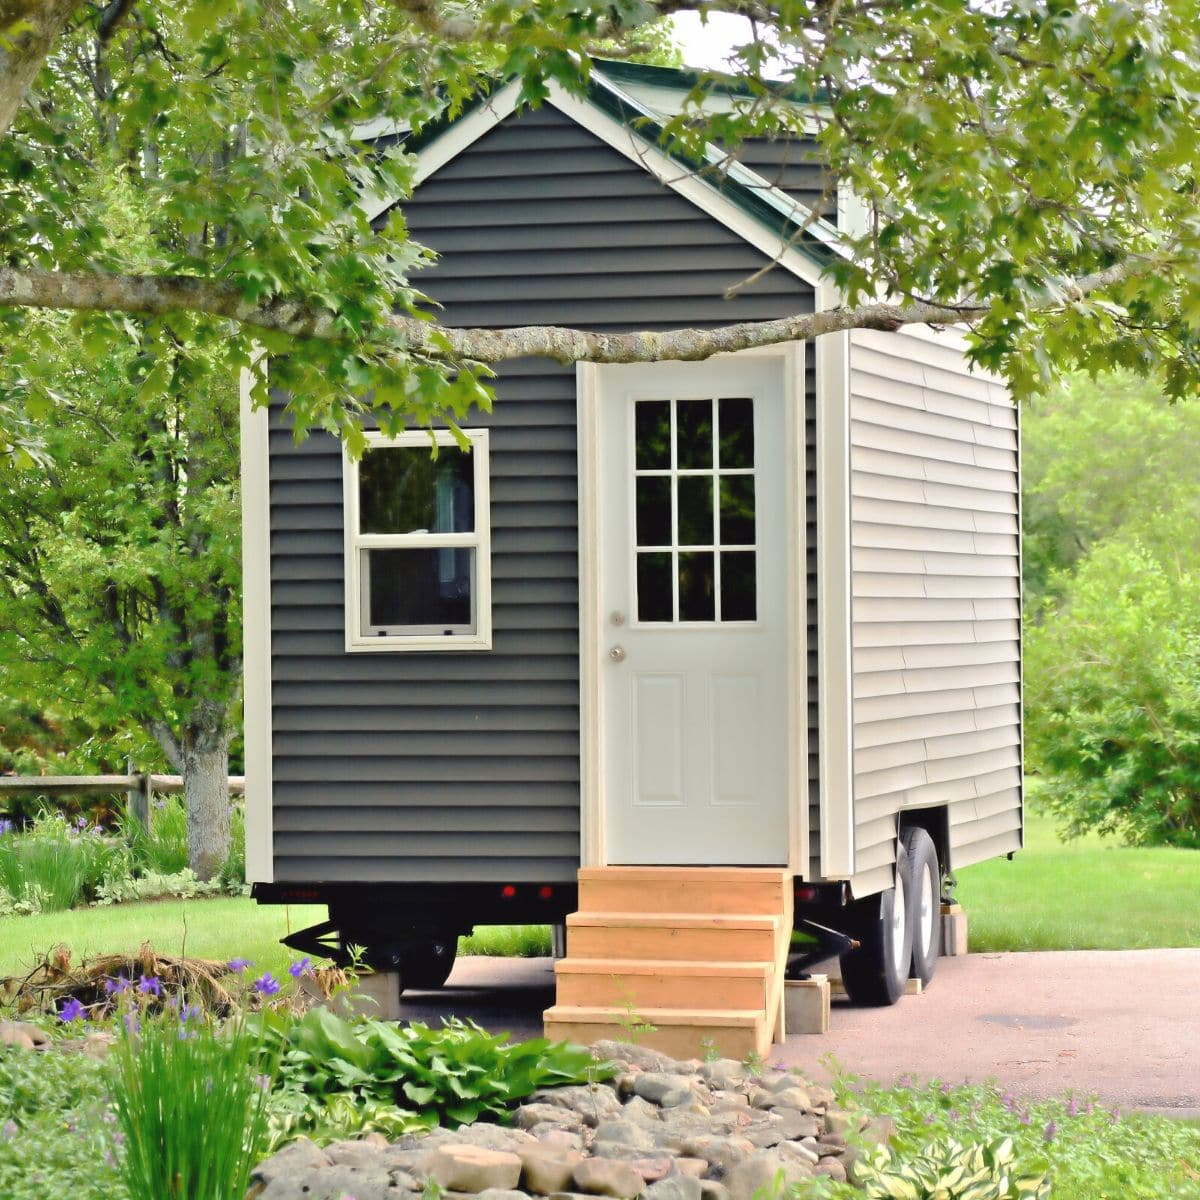 20 Do it Yourself Tiny Houses with Free or Low Cost Plans - Tiny